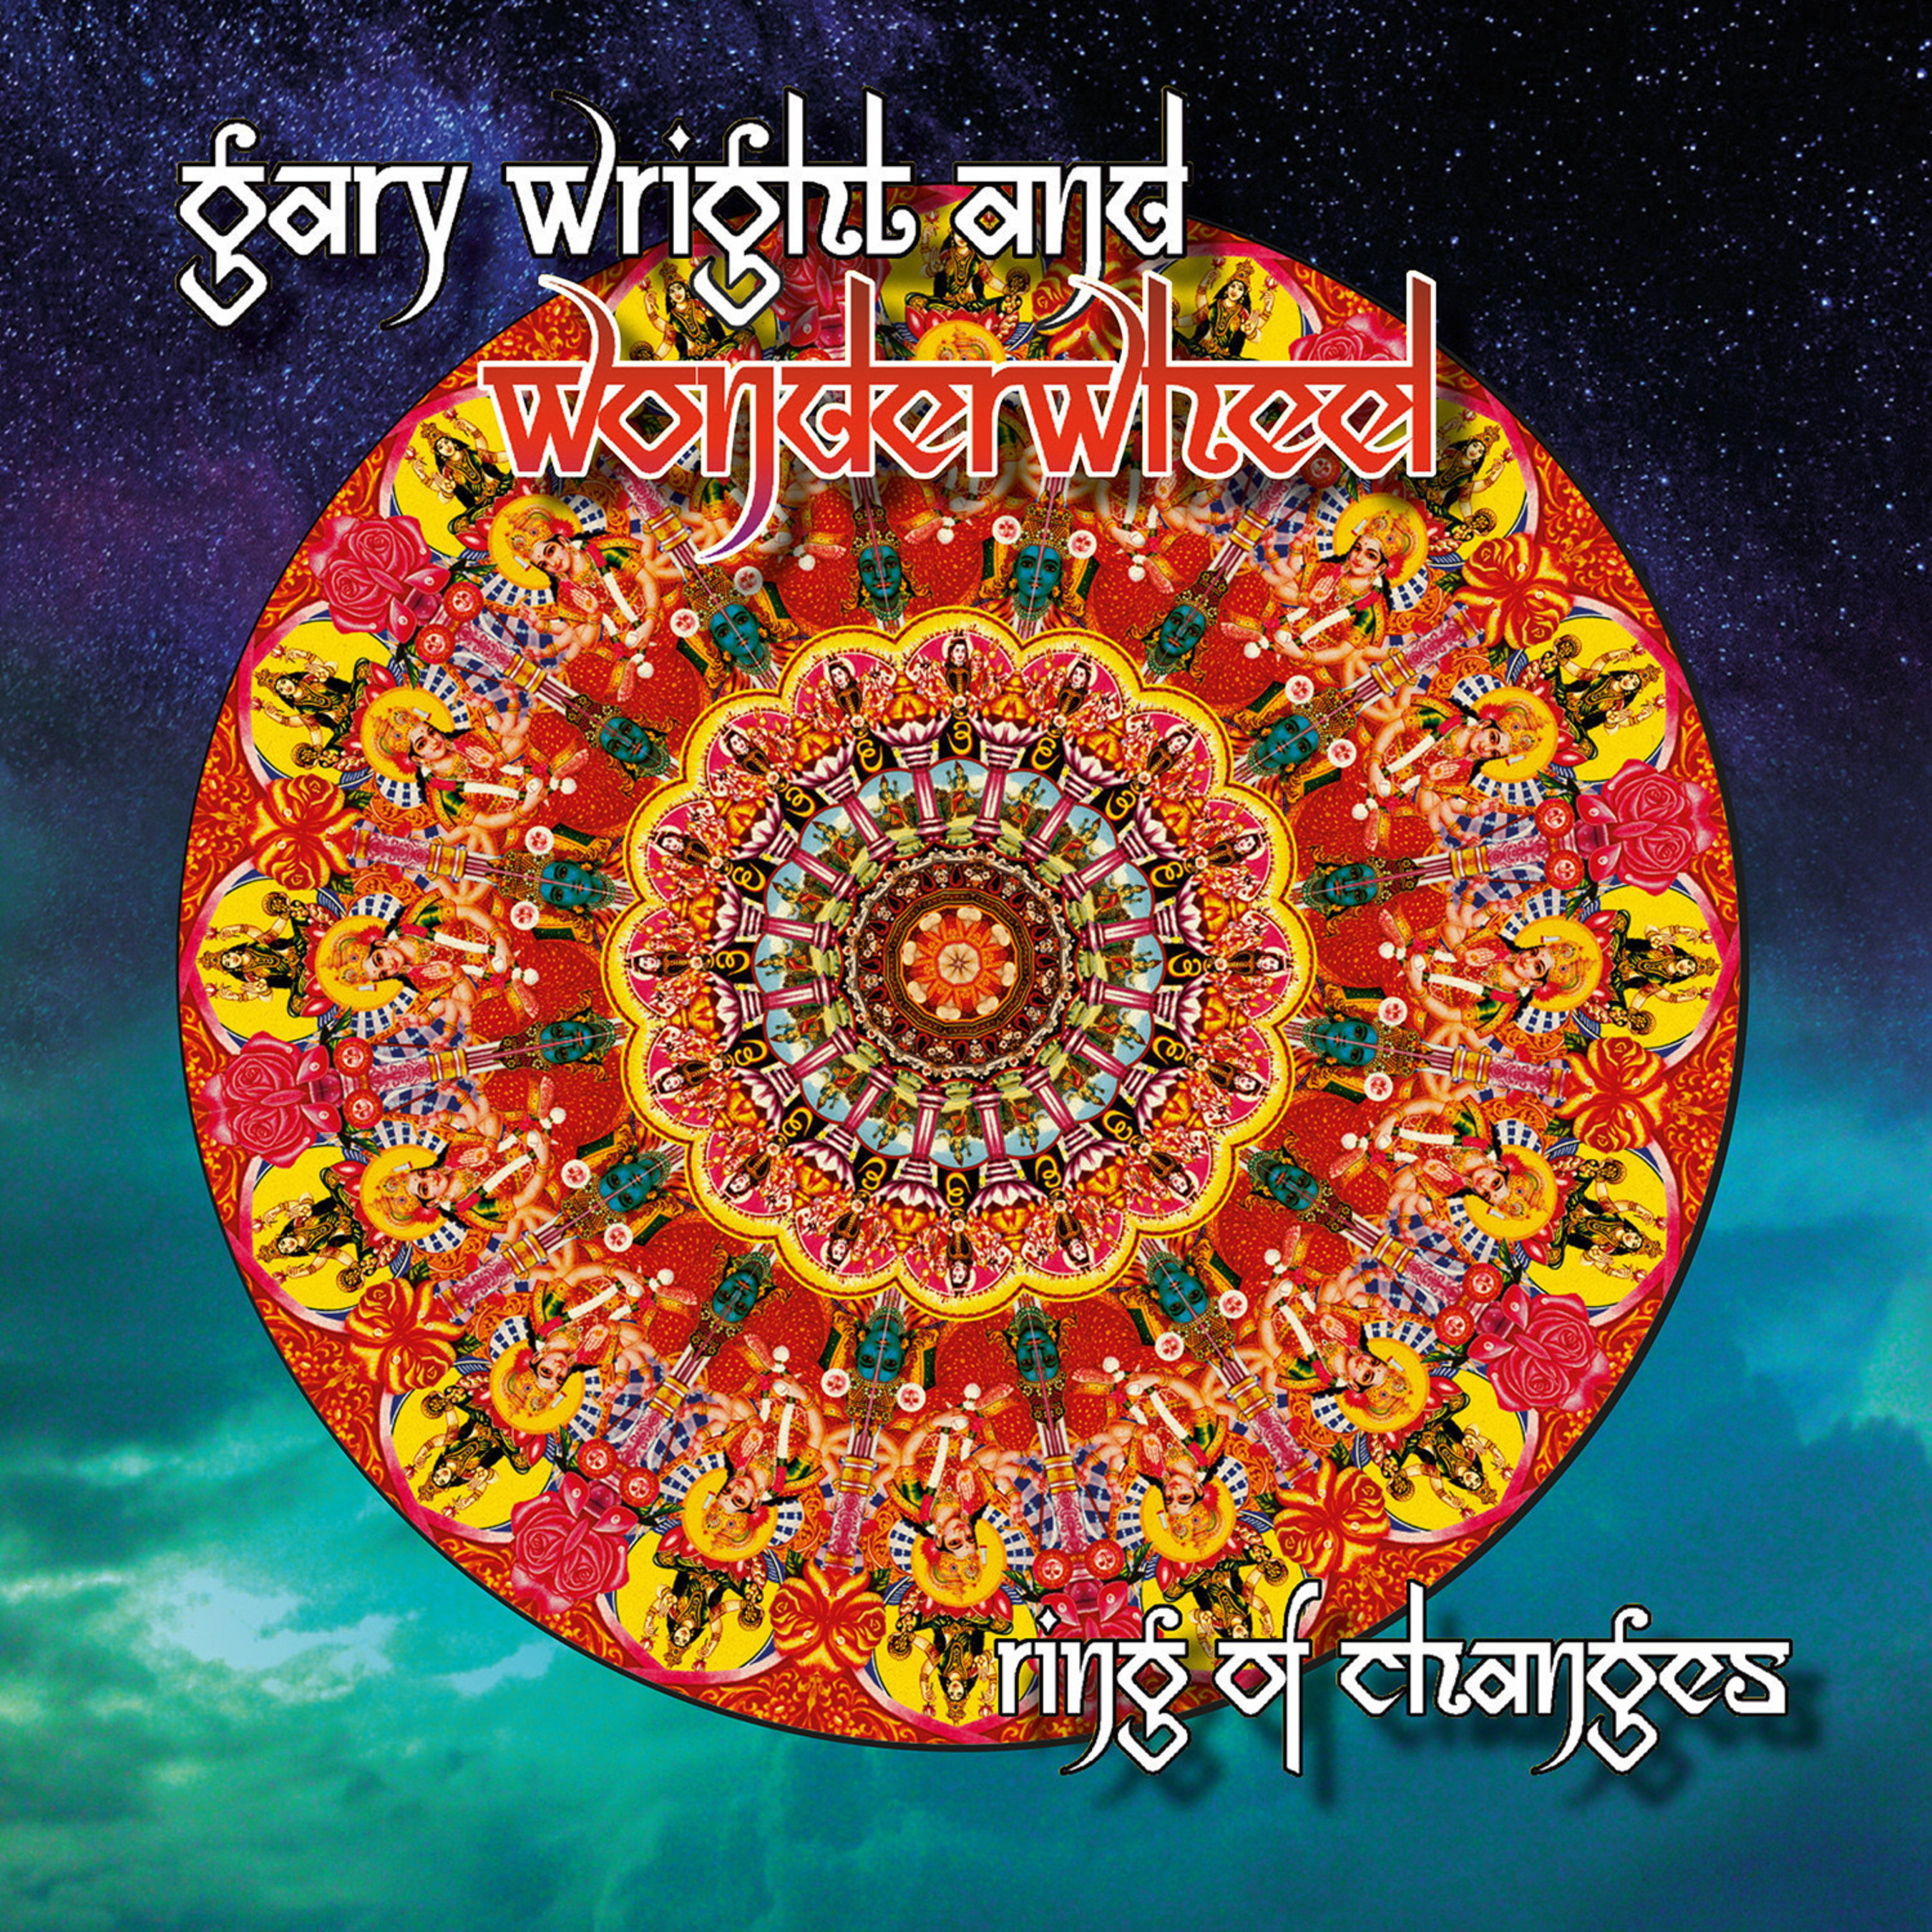 GARY WRIGHT'S LOST 1972 ALBUM, RING OF CHANGES, GETS RELEASED JULY 29